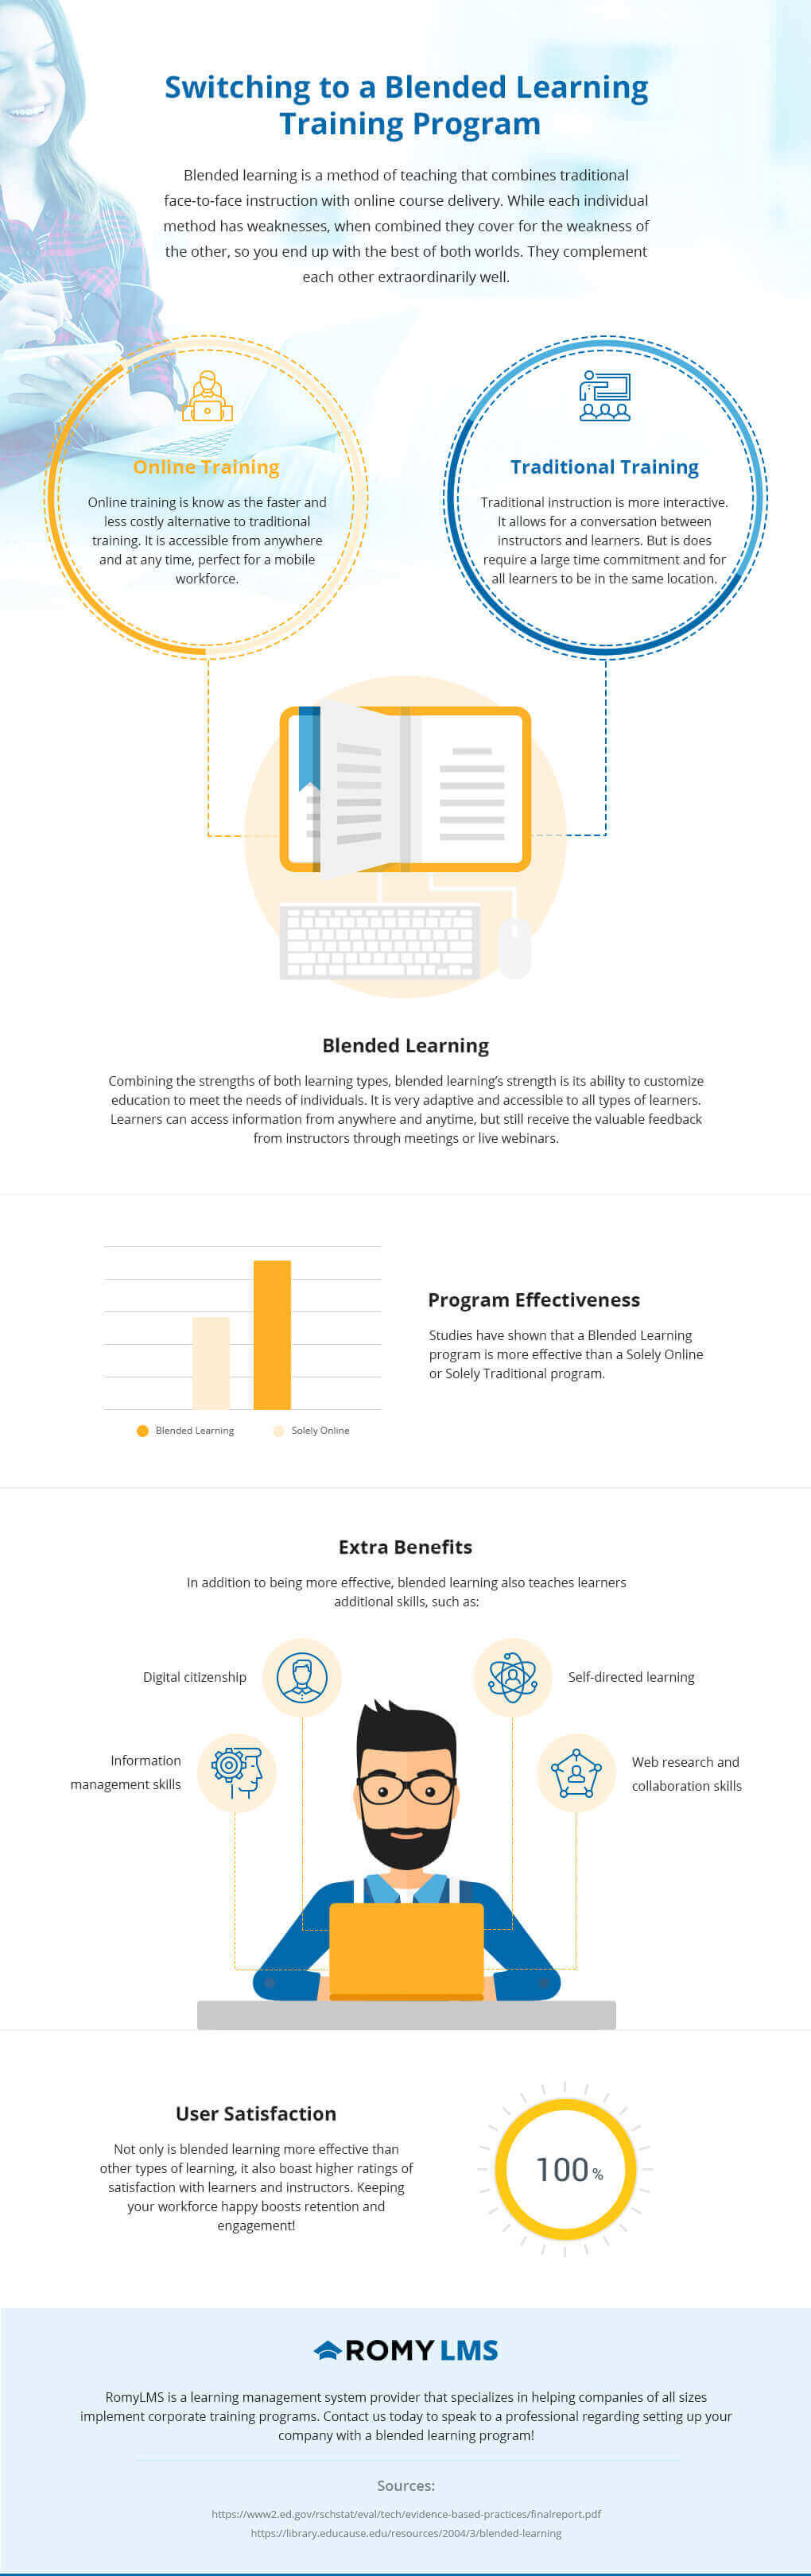 RomyLMS - Blended Learning Infographic